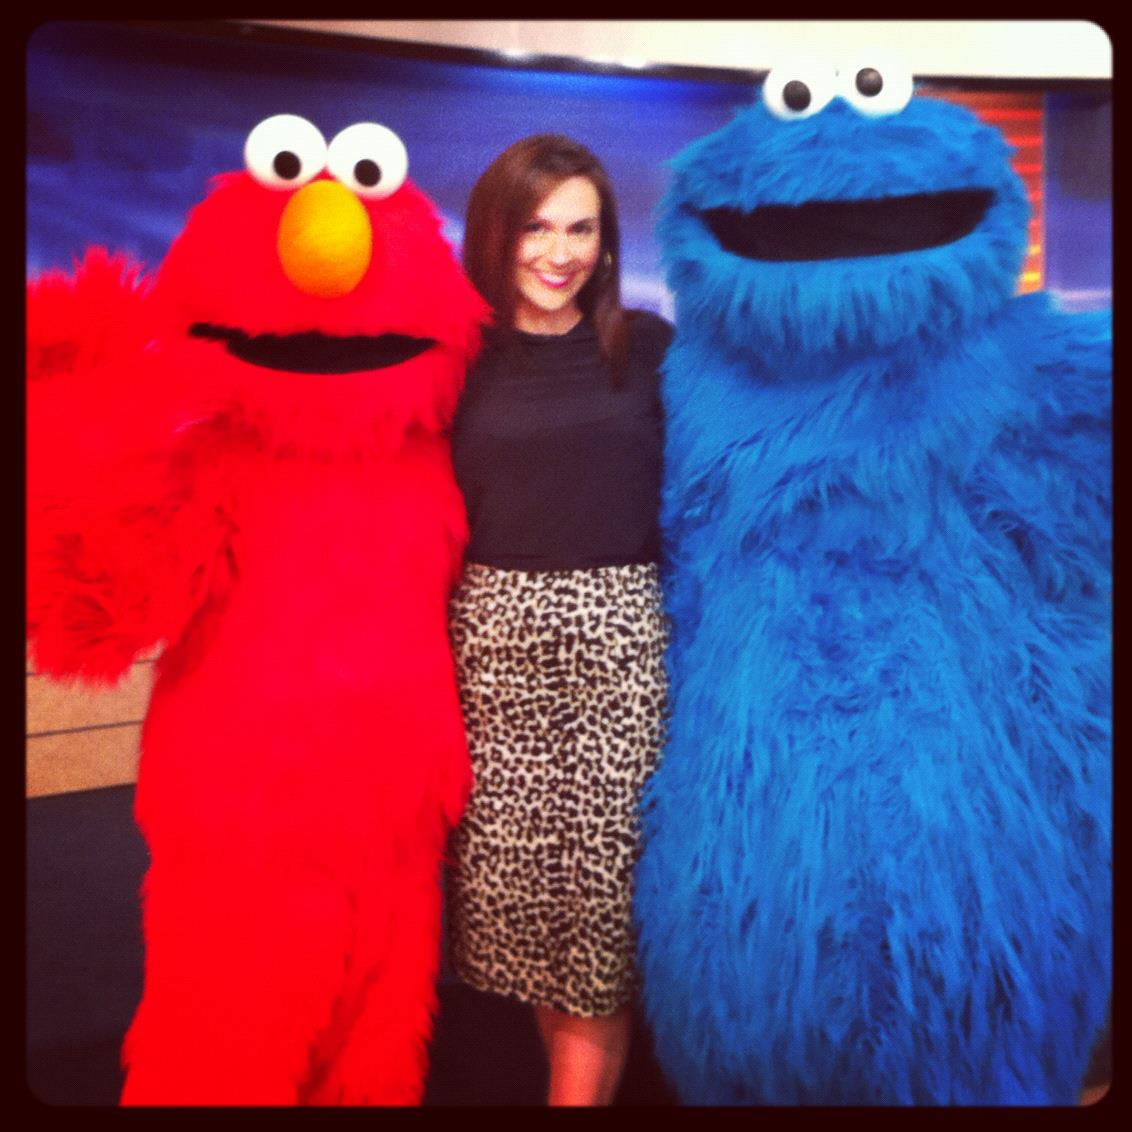 Ashley poses with Elmo and Cookie Monster during a commercial break.